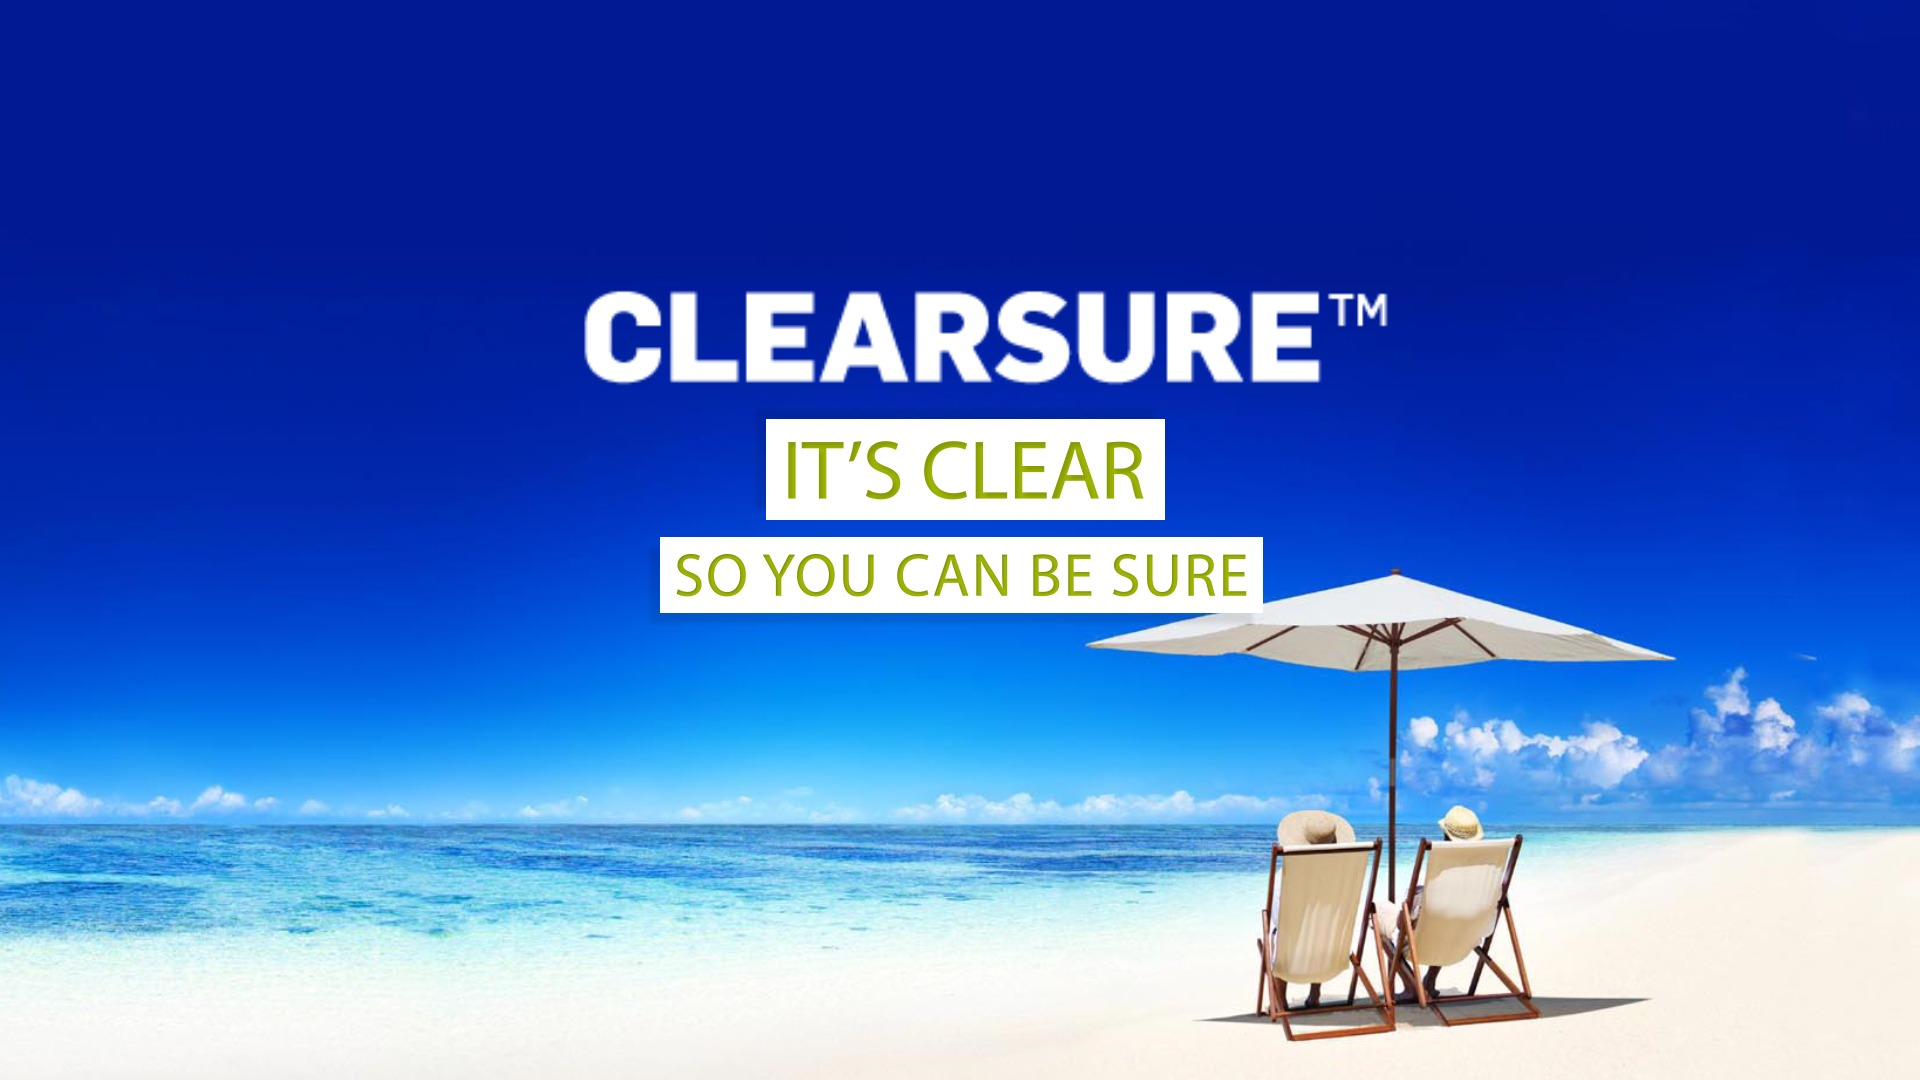 Clearsure travel insurance 10sec TV Commercial